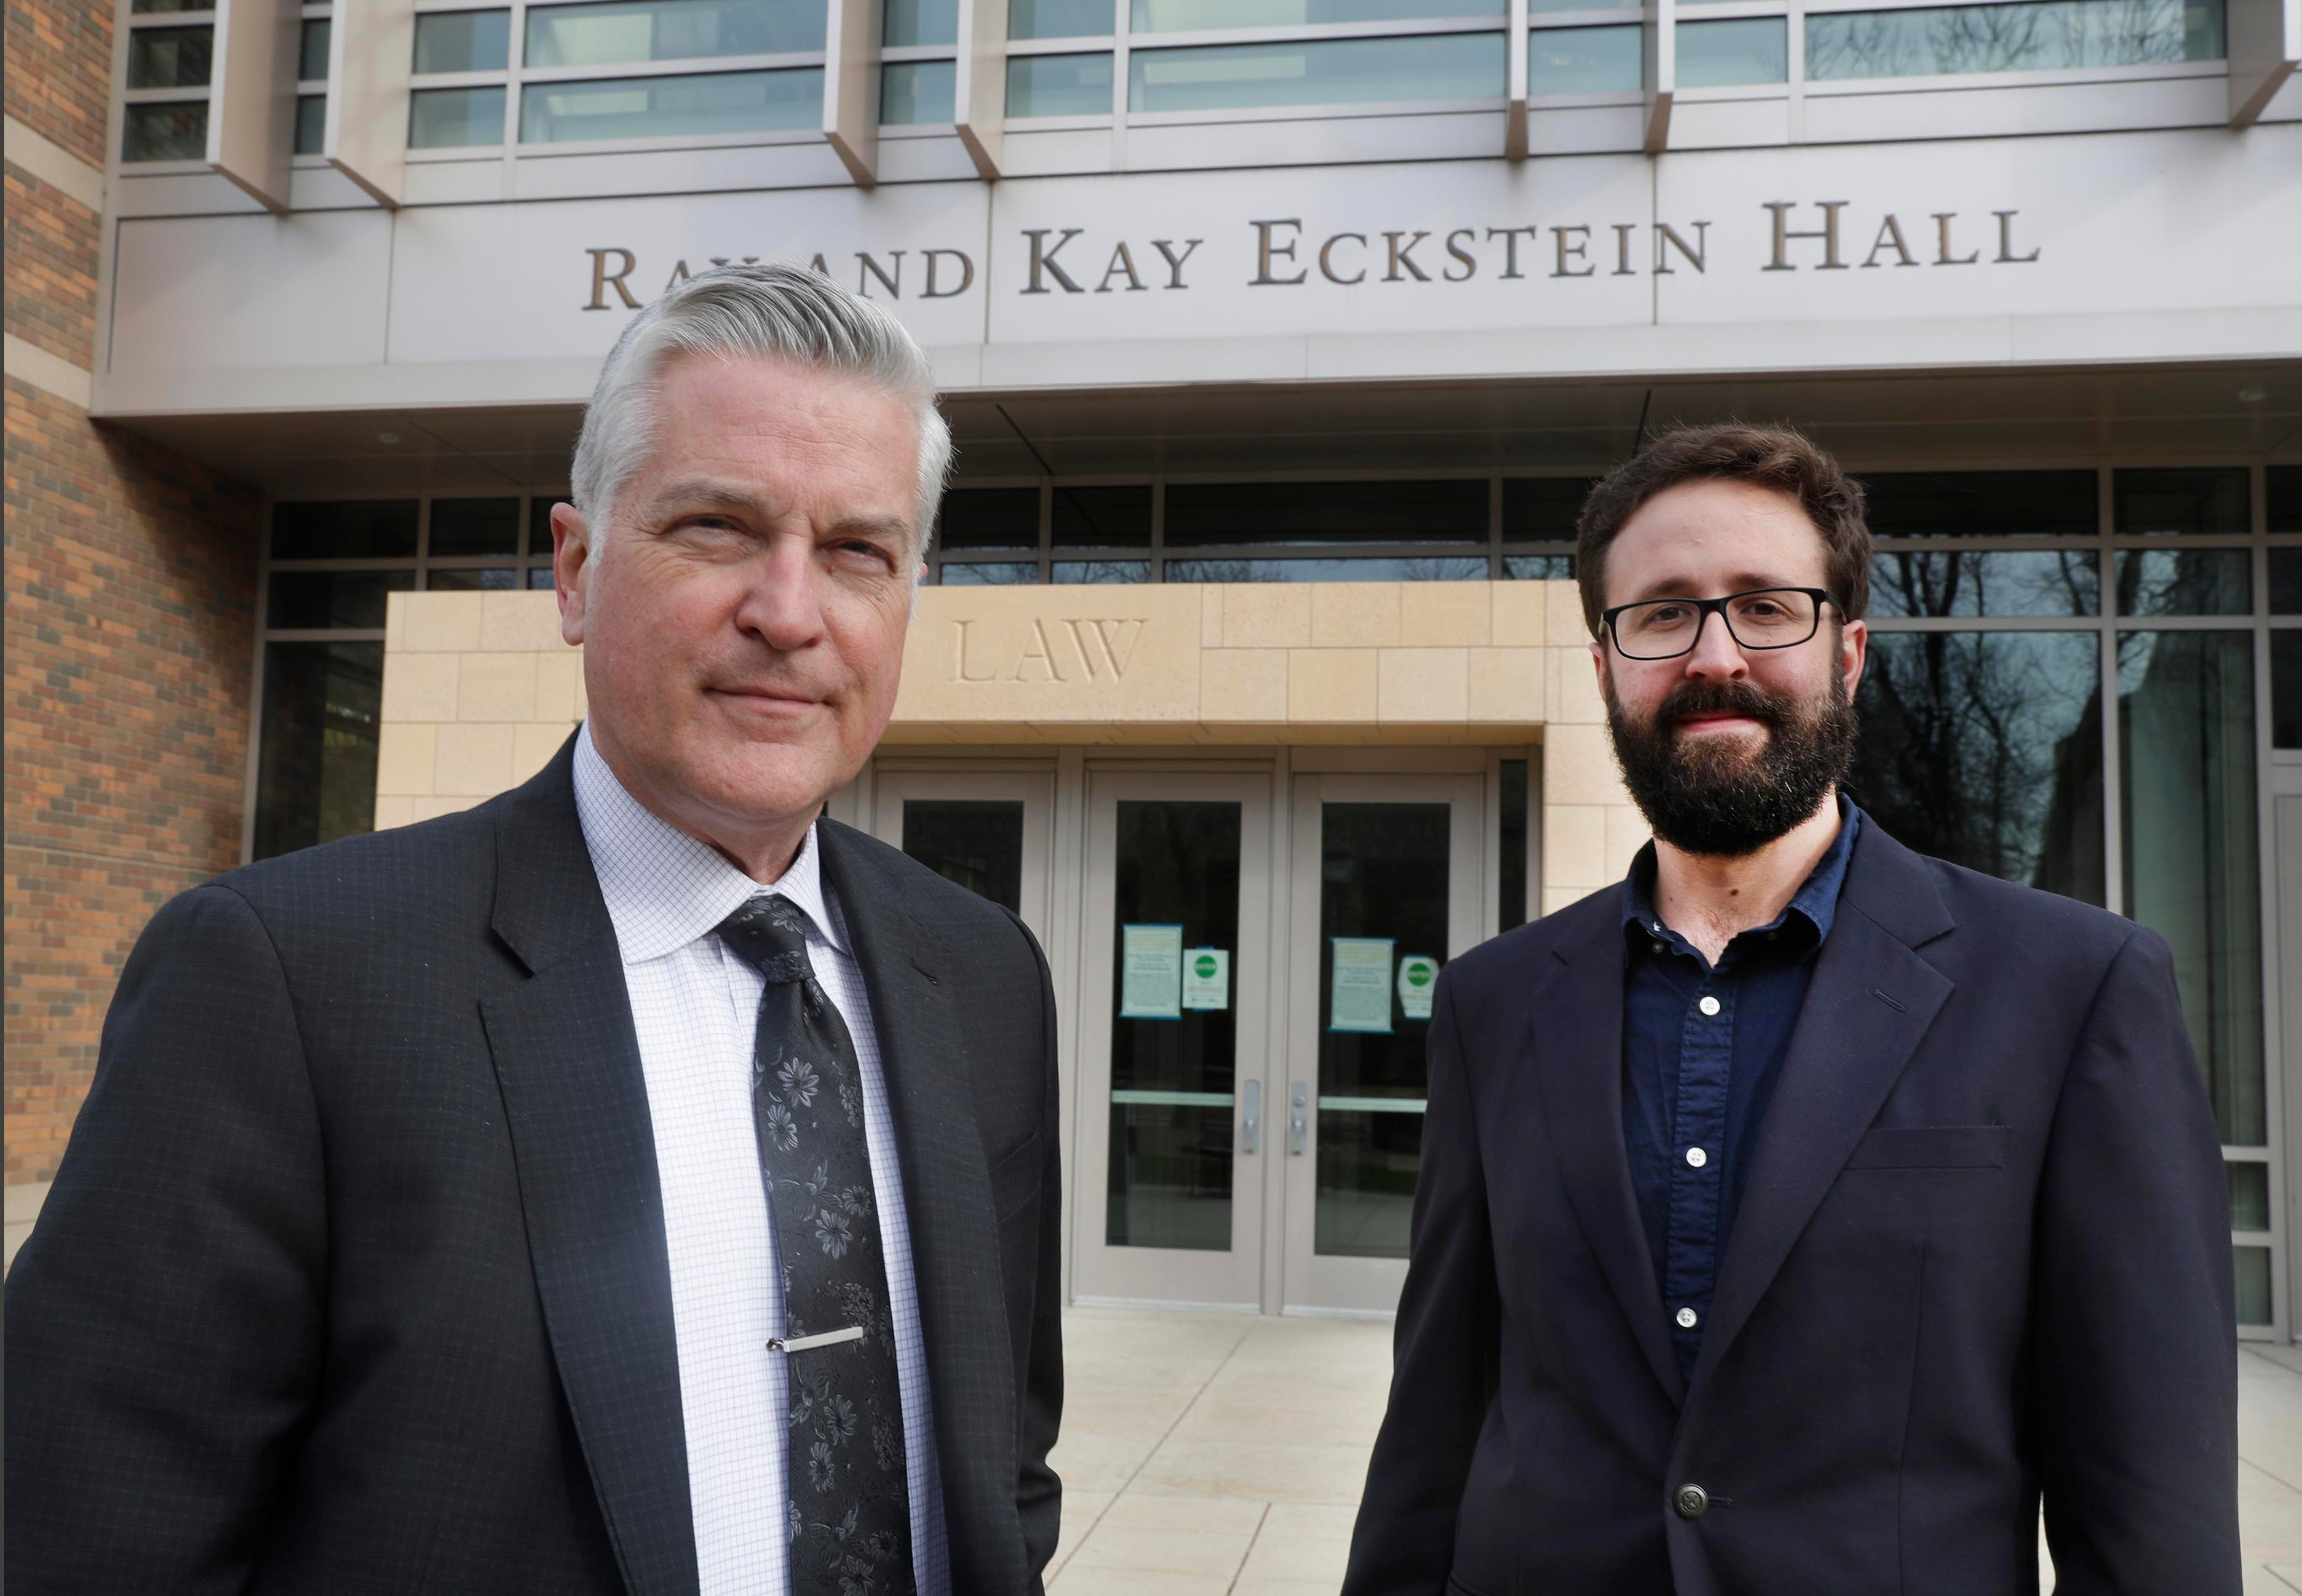 Mike Gousha, left, distinguished fellow in law and public policy, and John D. Johnson, research fellow at the Marquette Law School.